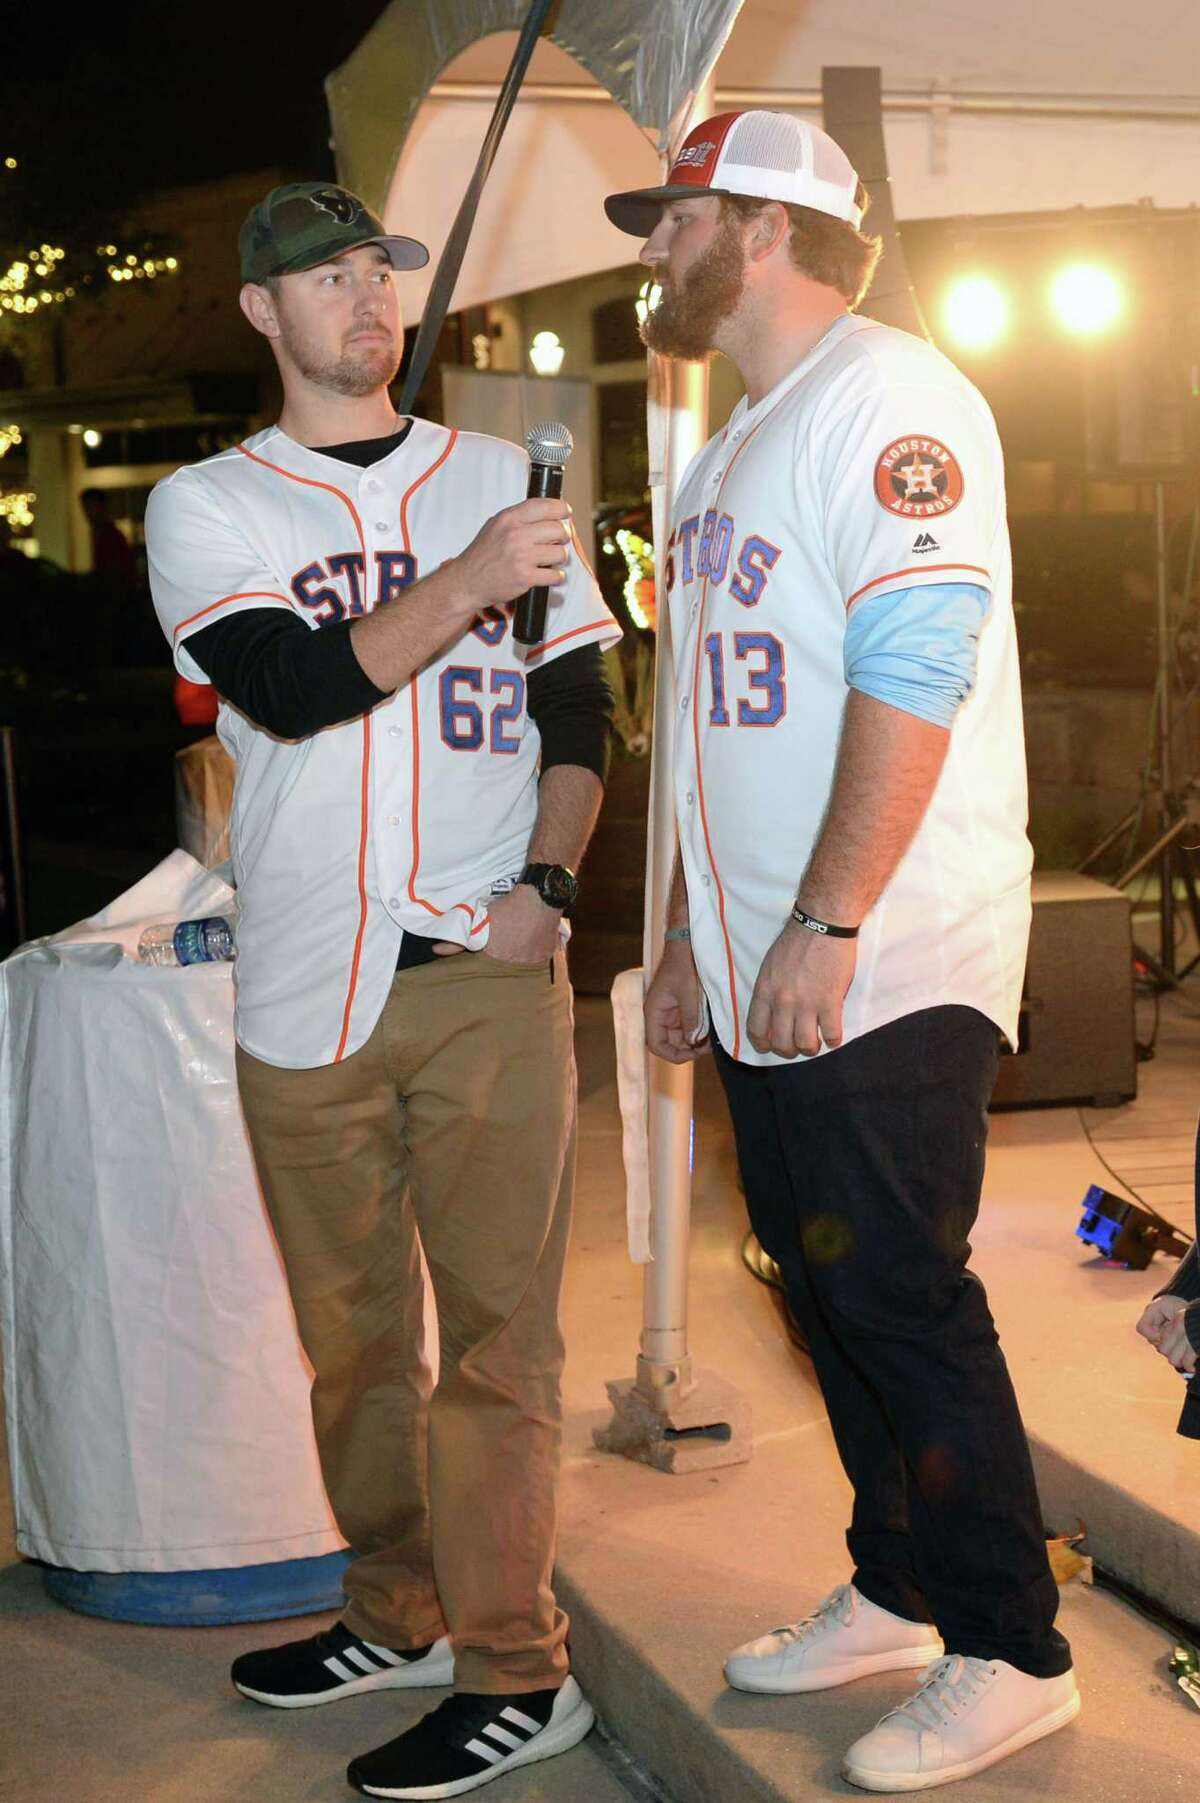 Astros players Brady Rodgers (left) and Tyler White (right) talk to fans as the Astros Caravan makes a stop at LaCenterra in Katy, on Tuesday, January 22, 2019.